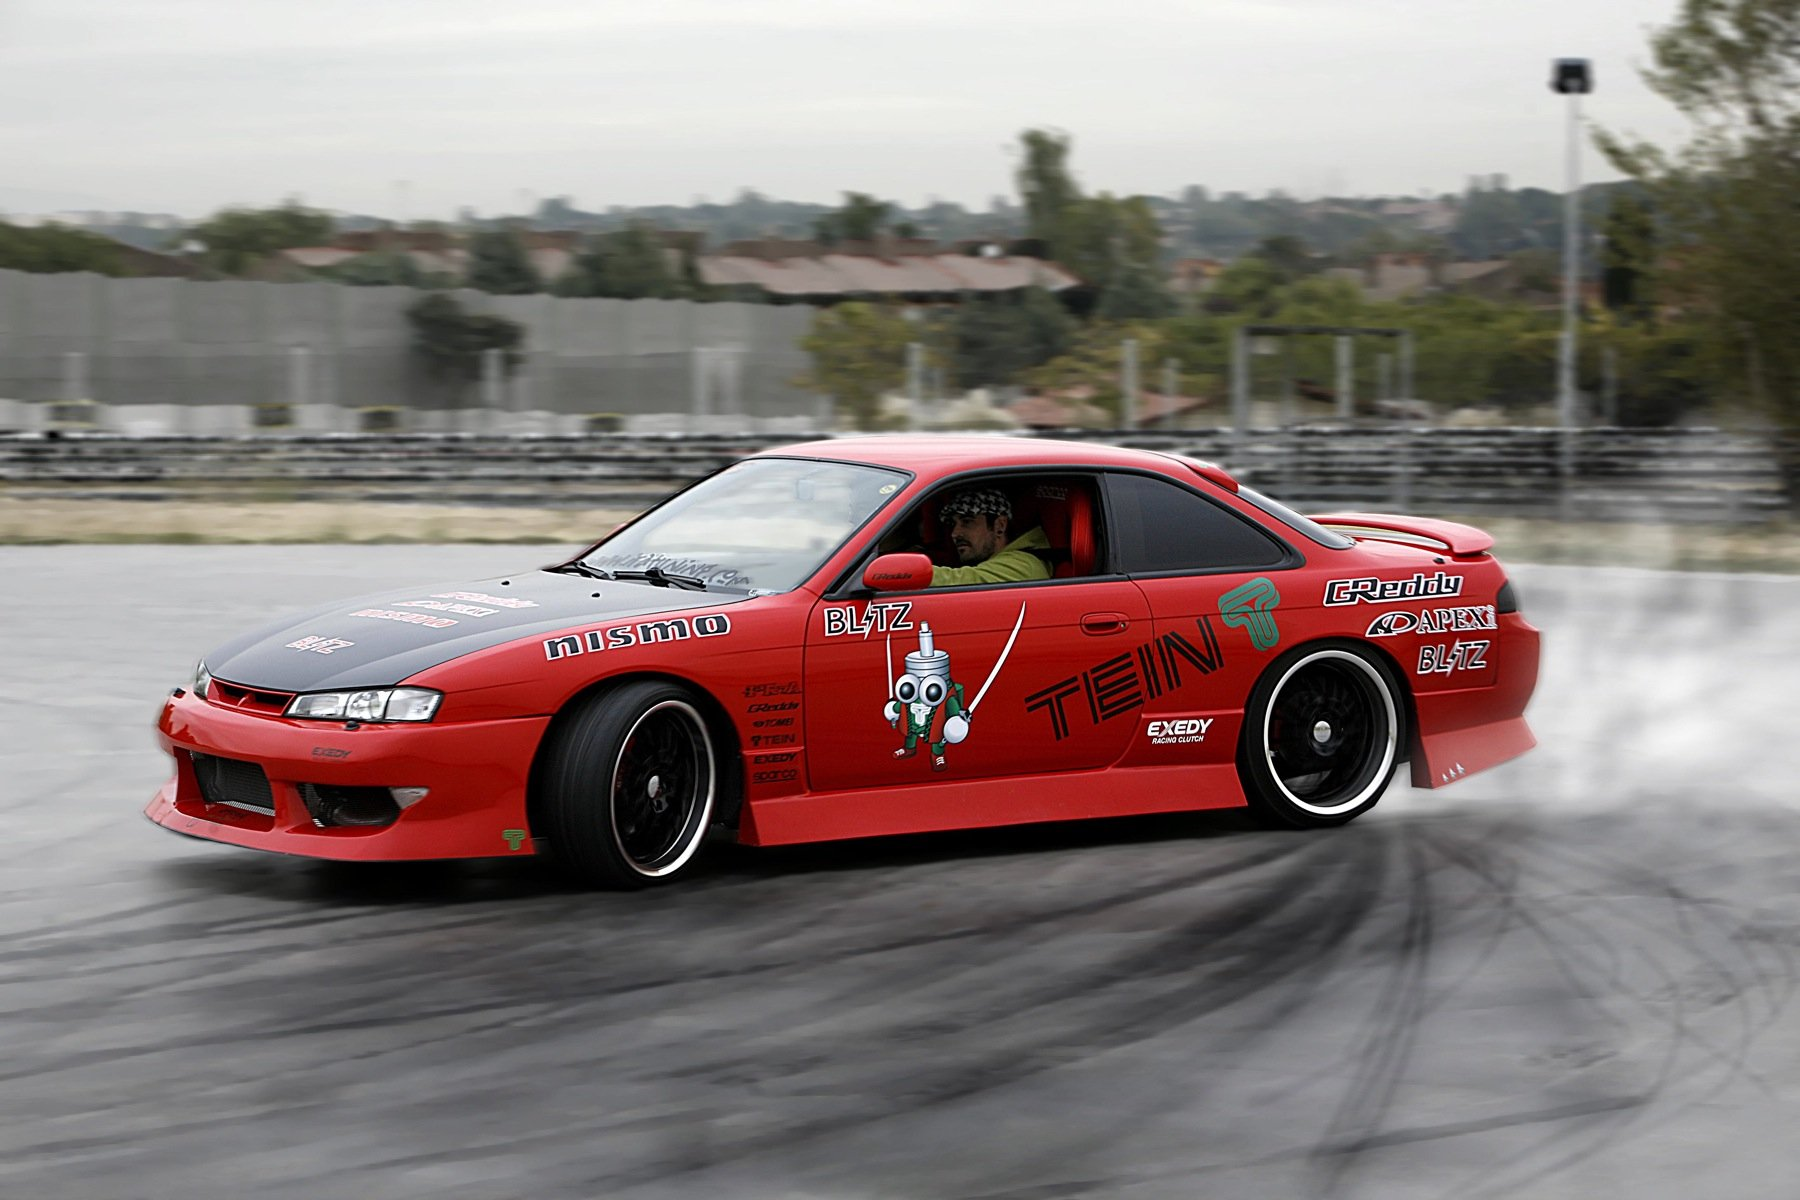 nissan. 200sx. S13. S14. Coupe. Sedan. Cars. Japan. Drift Wallpapers HD / Desktop and Mobile Backgrounds